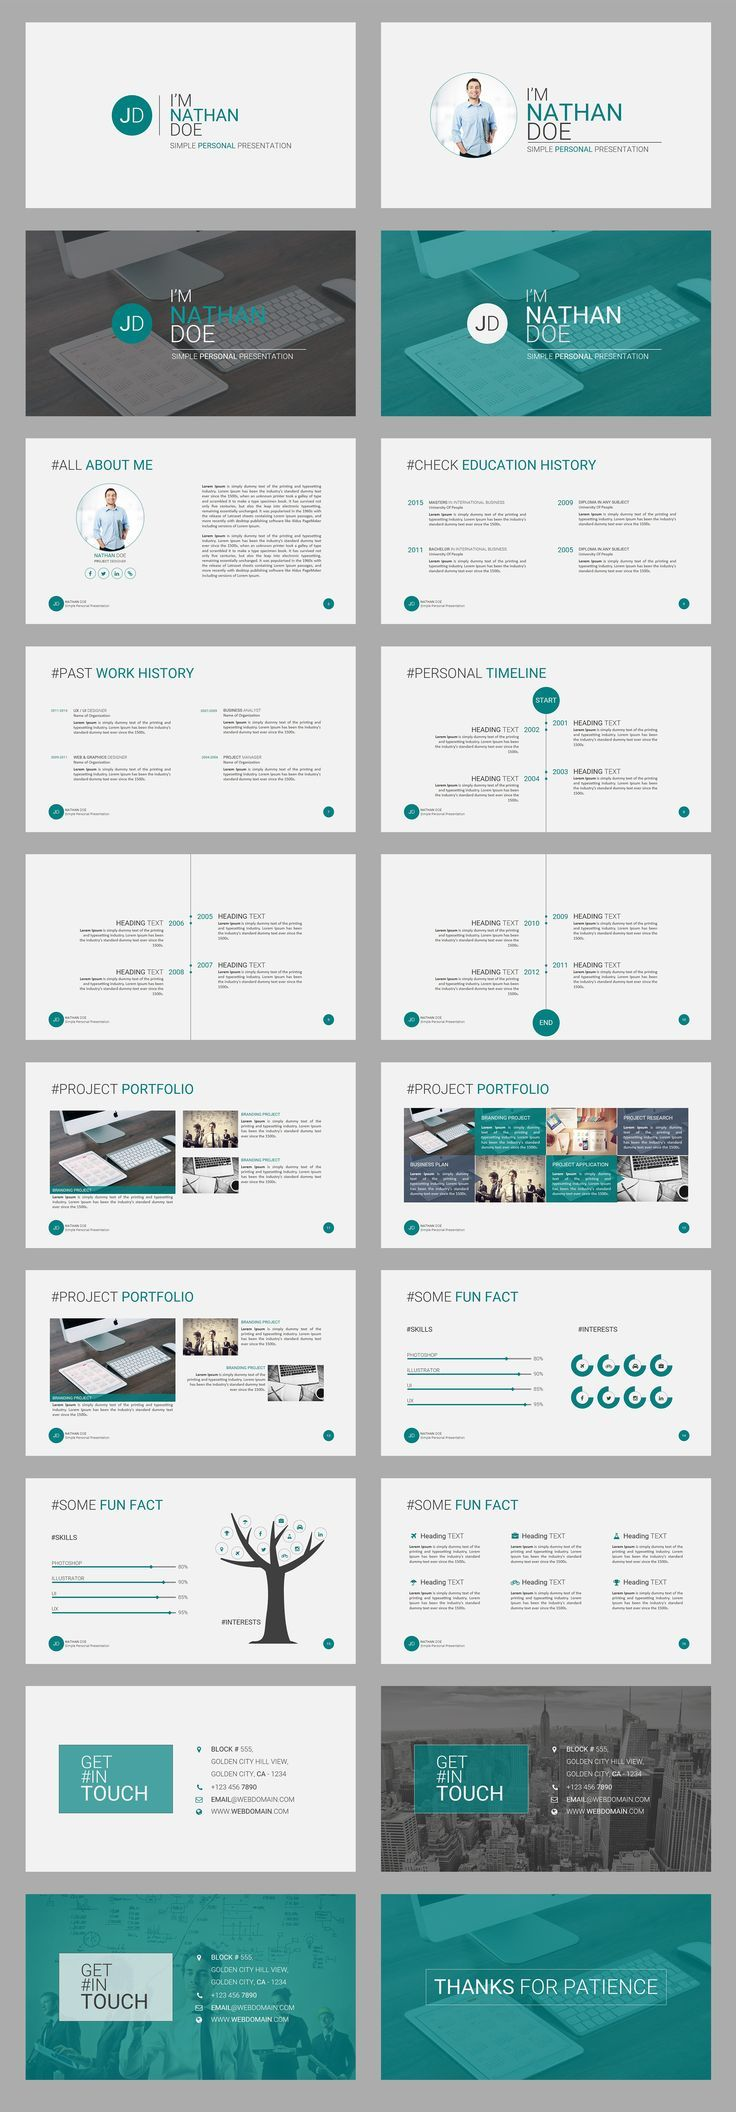 u0026quot jd  resume  powerpoint presentation template u0026quot  is a  simple but  amazing  personal